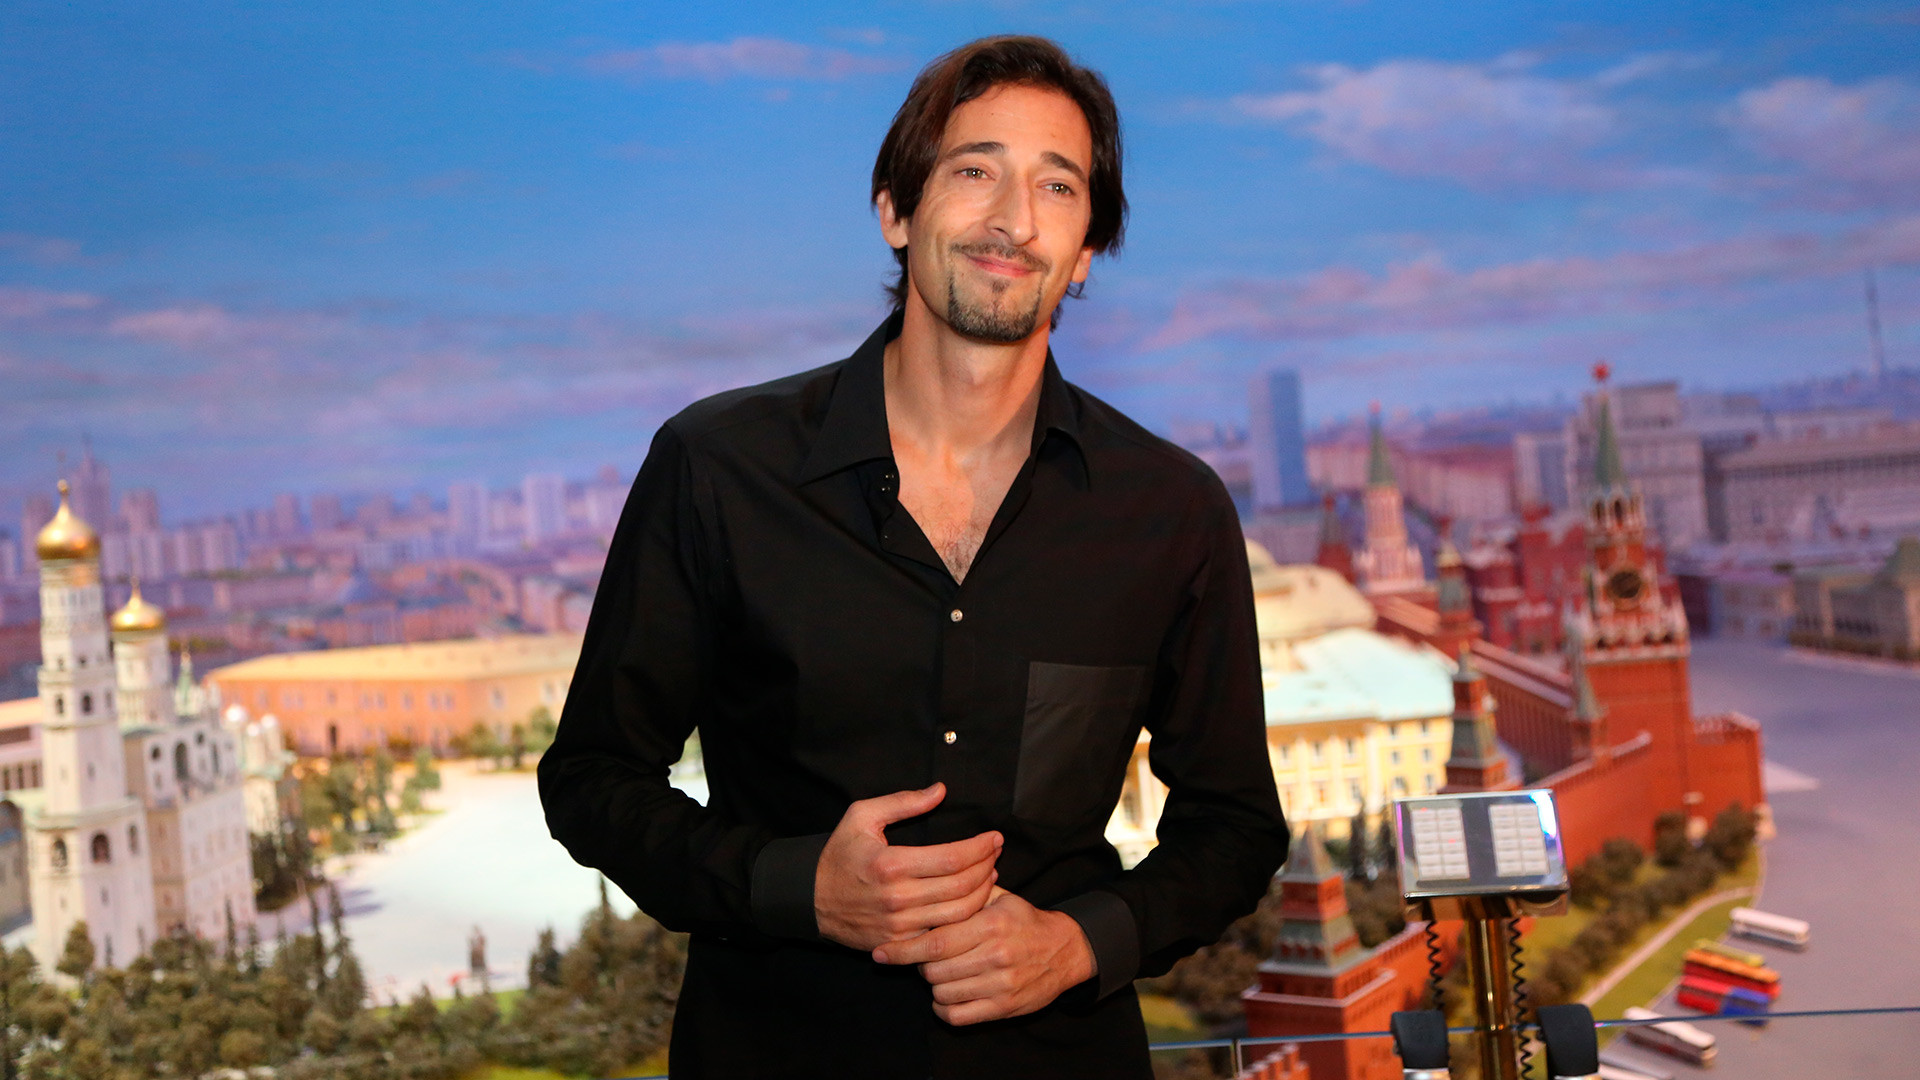 Adrien Brody holds a news conference at the Radisson Royal Hotel Moscow.